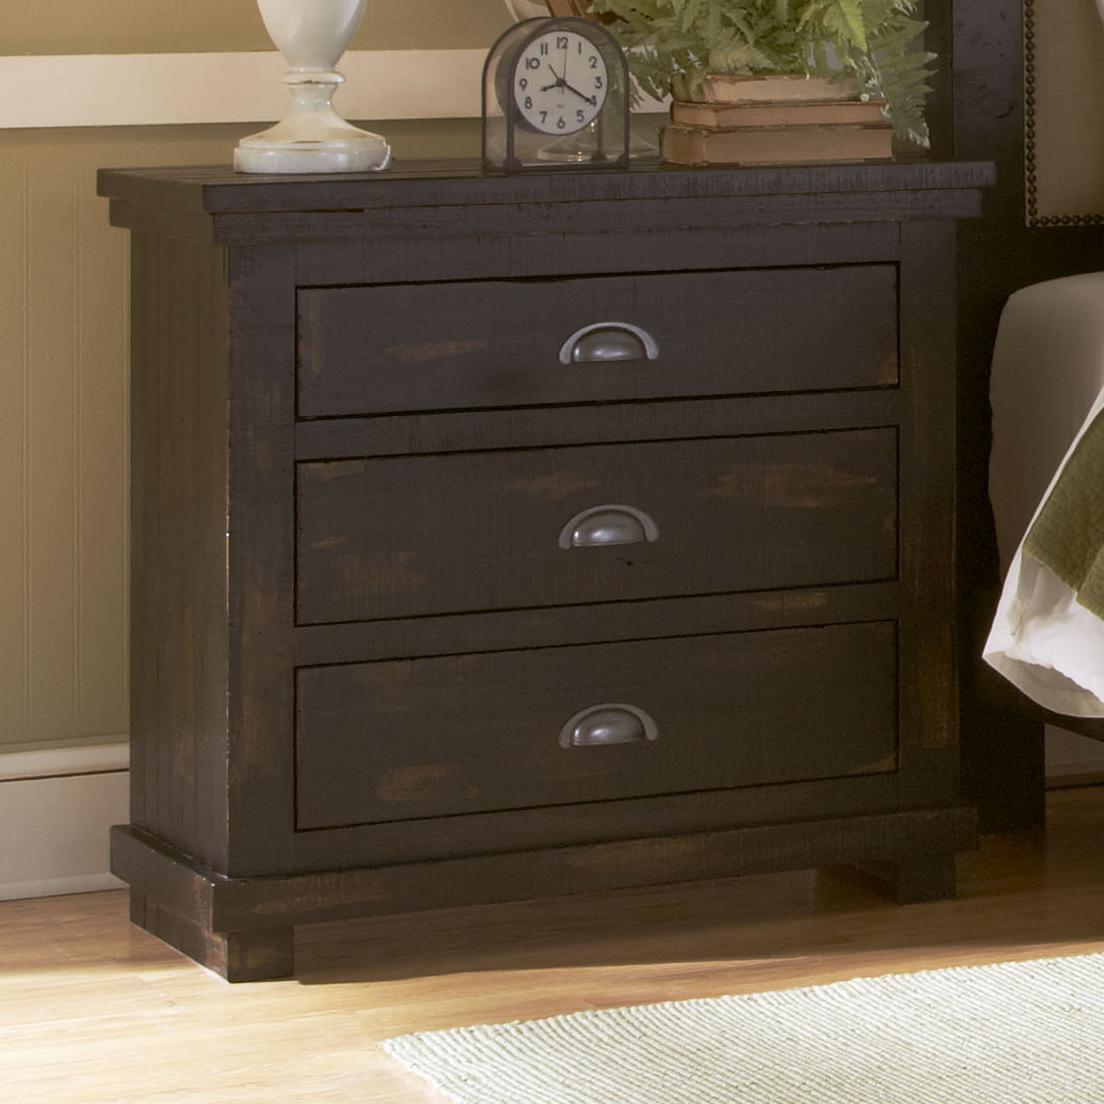 Willow Nightstand by Progressive Furniture at Value City Furniture